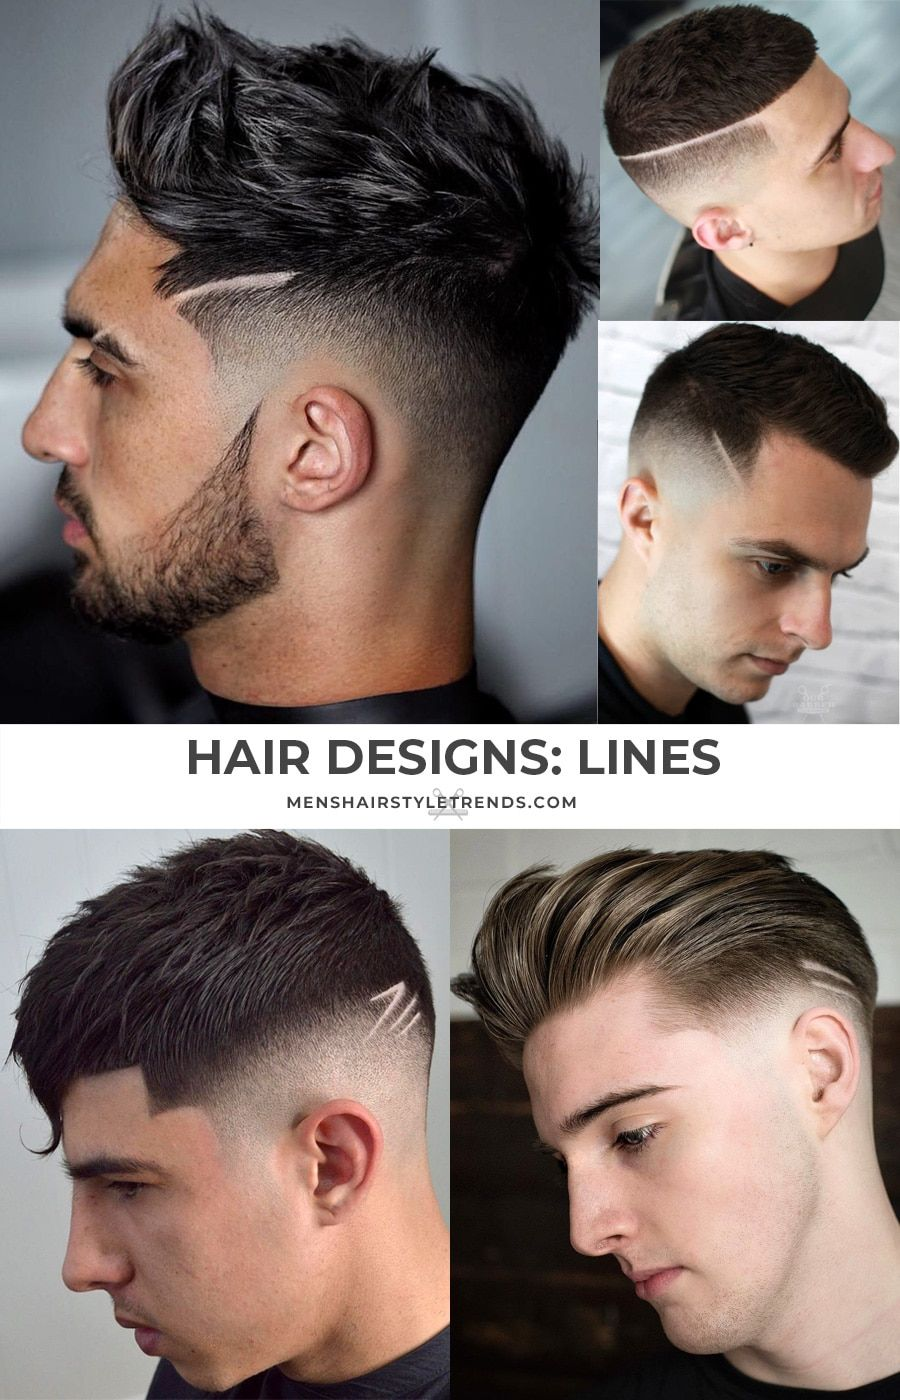 4+ Cool Haircut Designs With Lines For Guys (4 Styles